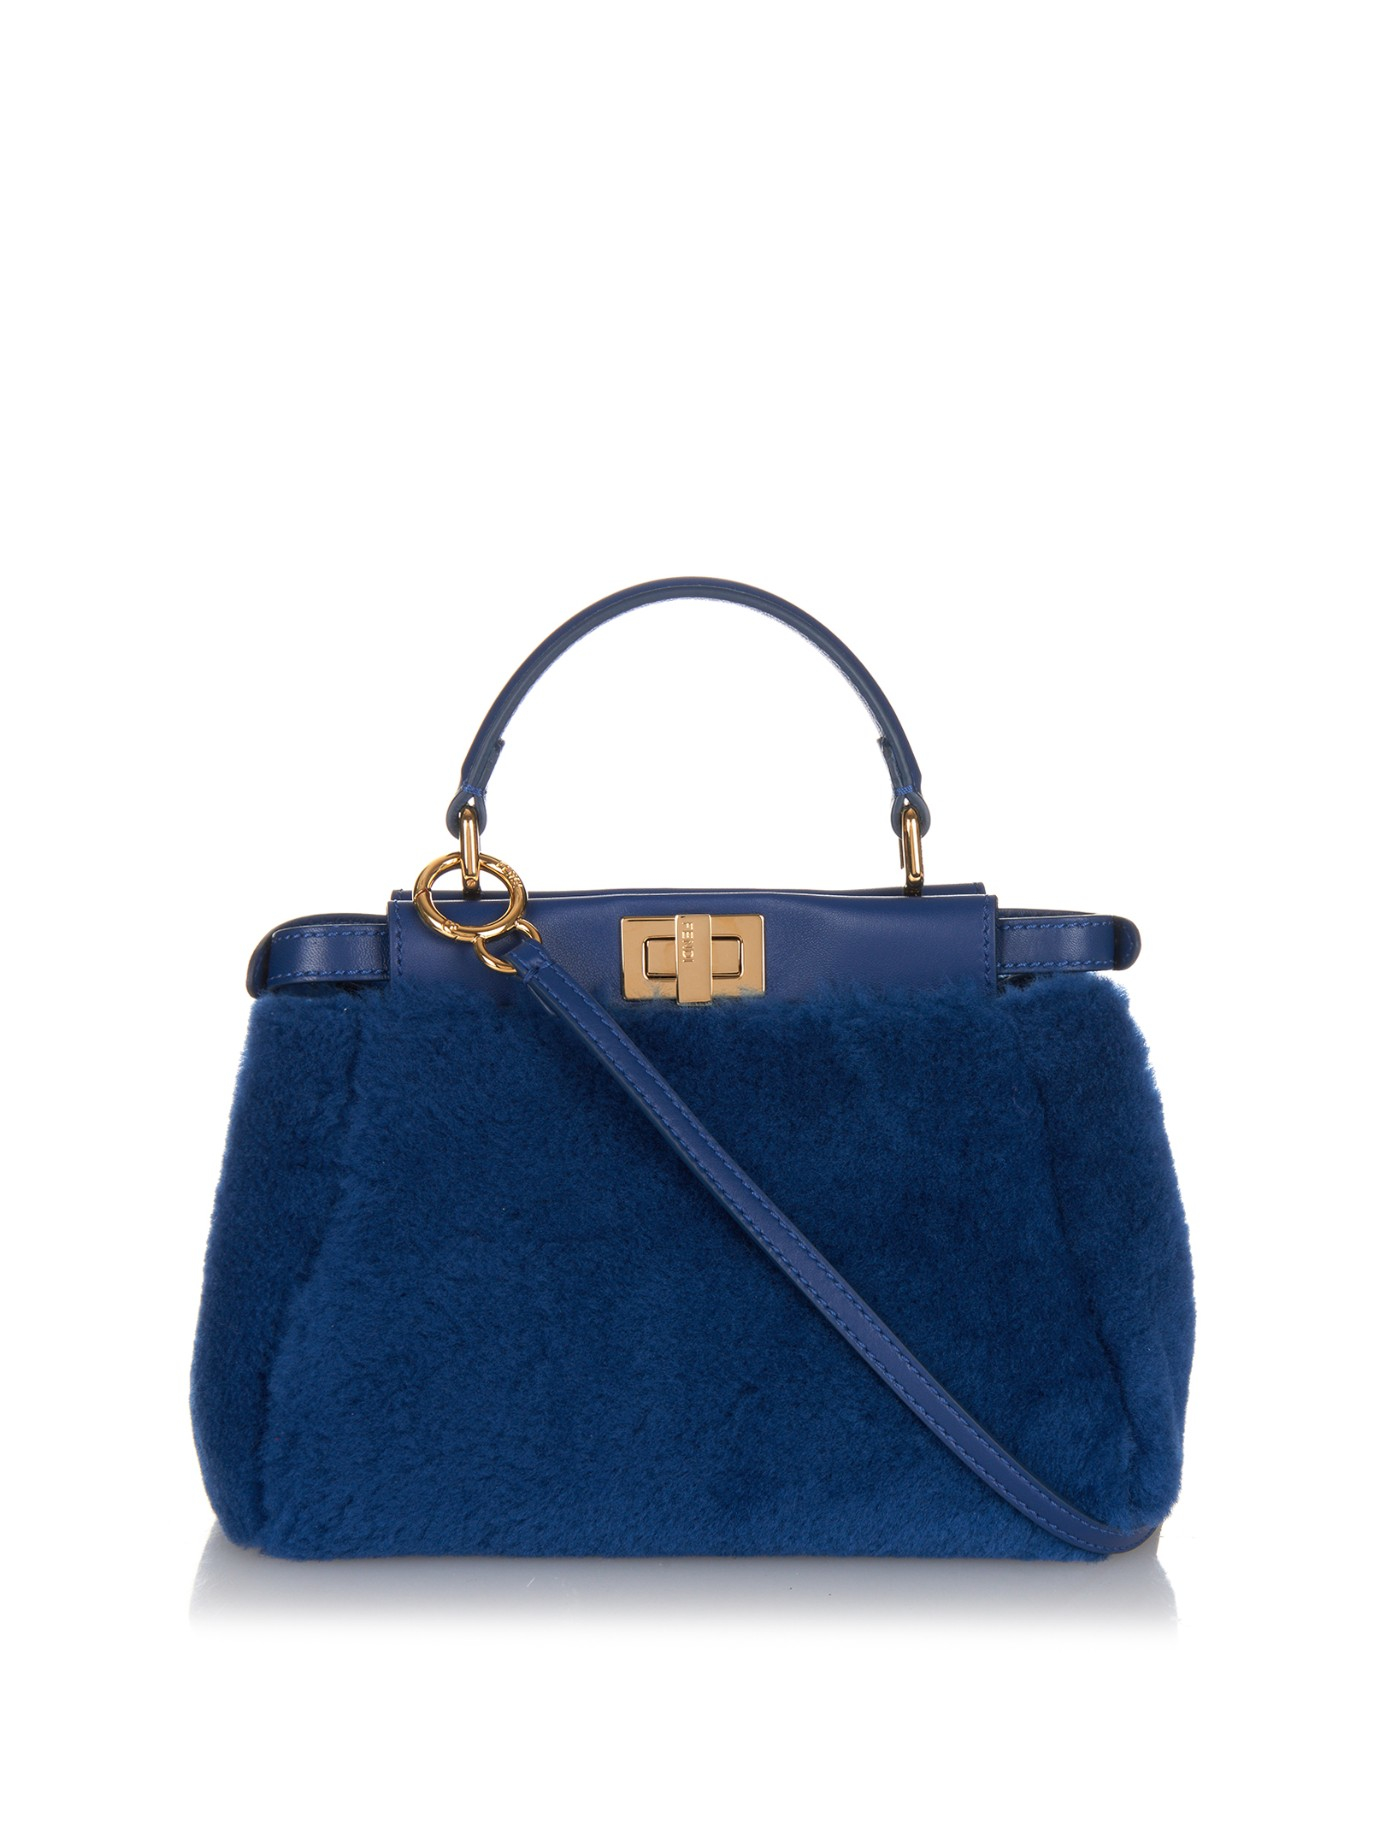 310c564be2 Lyst - Fendi Mini Peekaboo Shearling Cross-body Bag in Blue